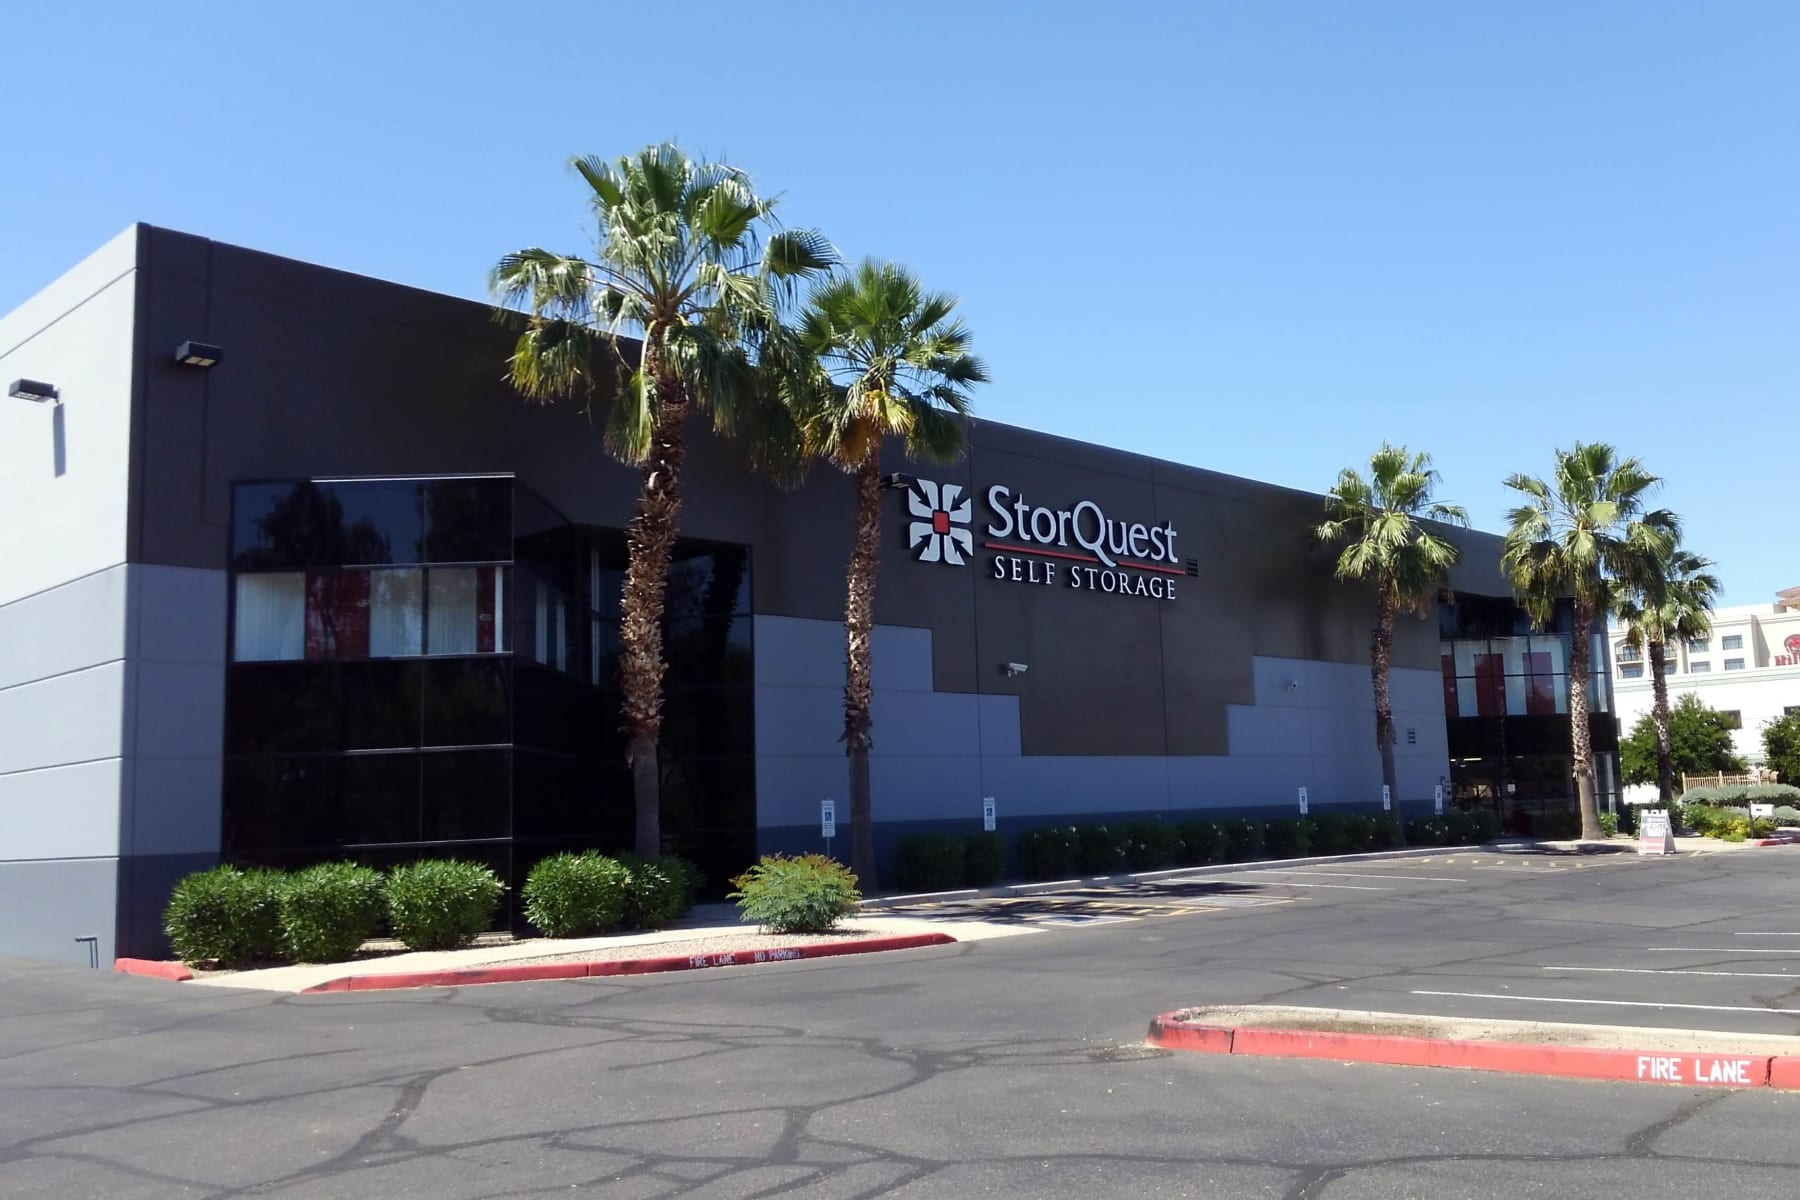 Store front of StorQuest Self Storage in Chandler, Arizona